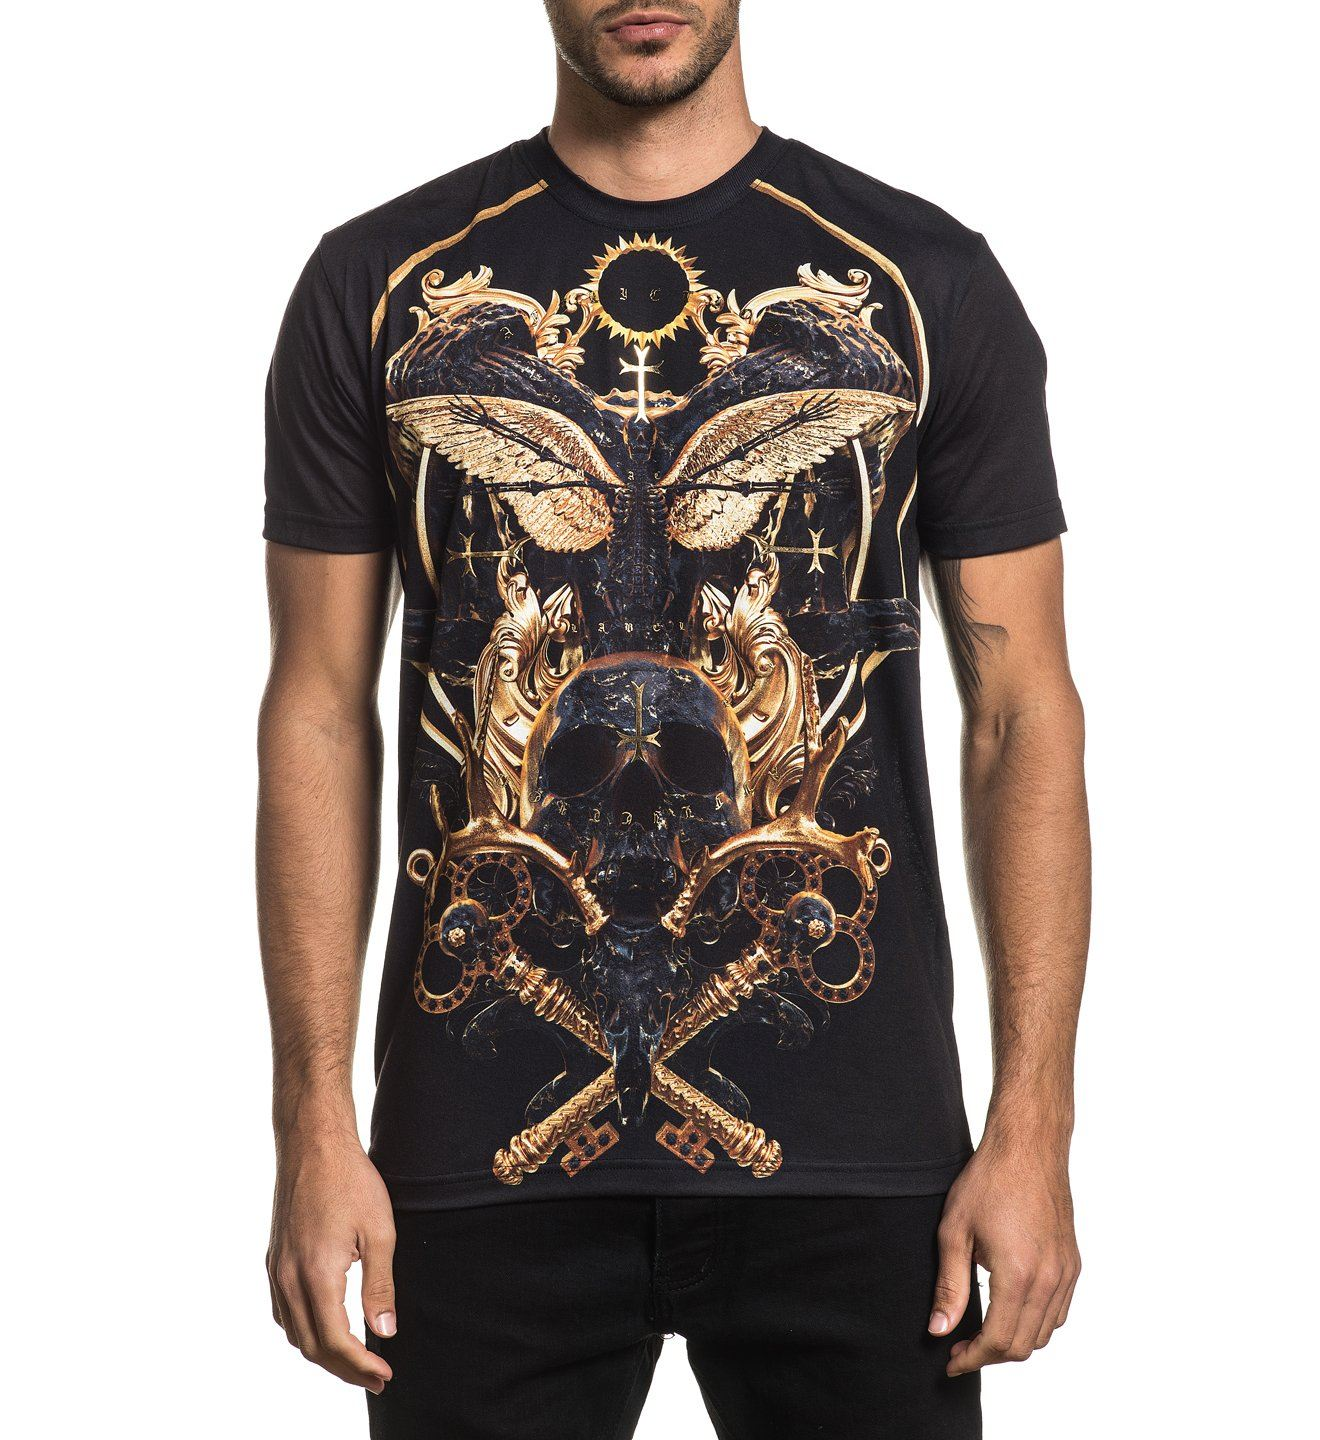 Totem - Mens Short Sleeve Tees - Affliction Clothing